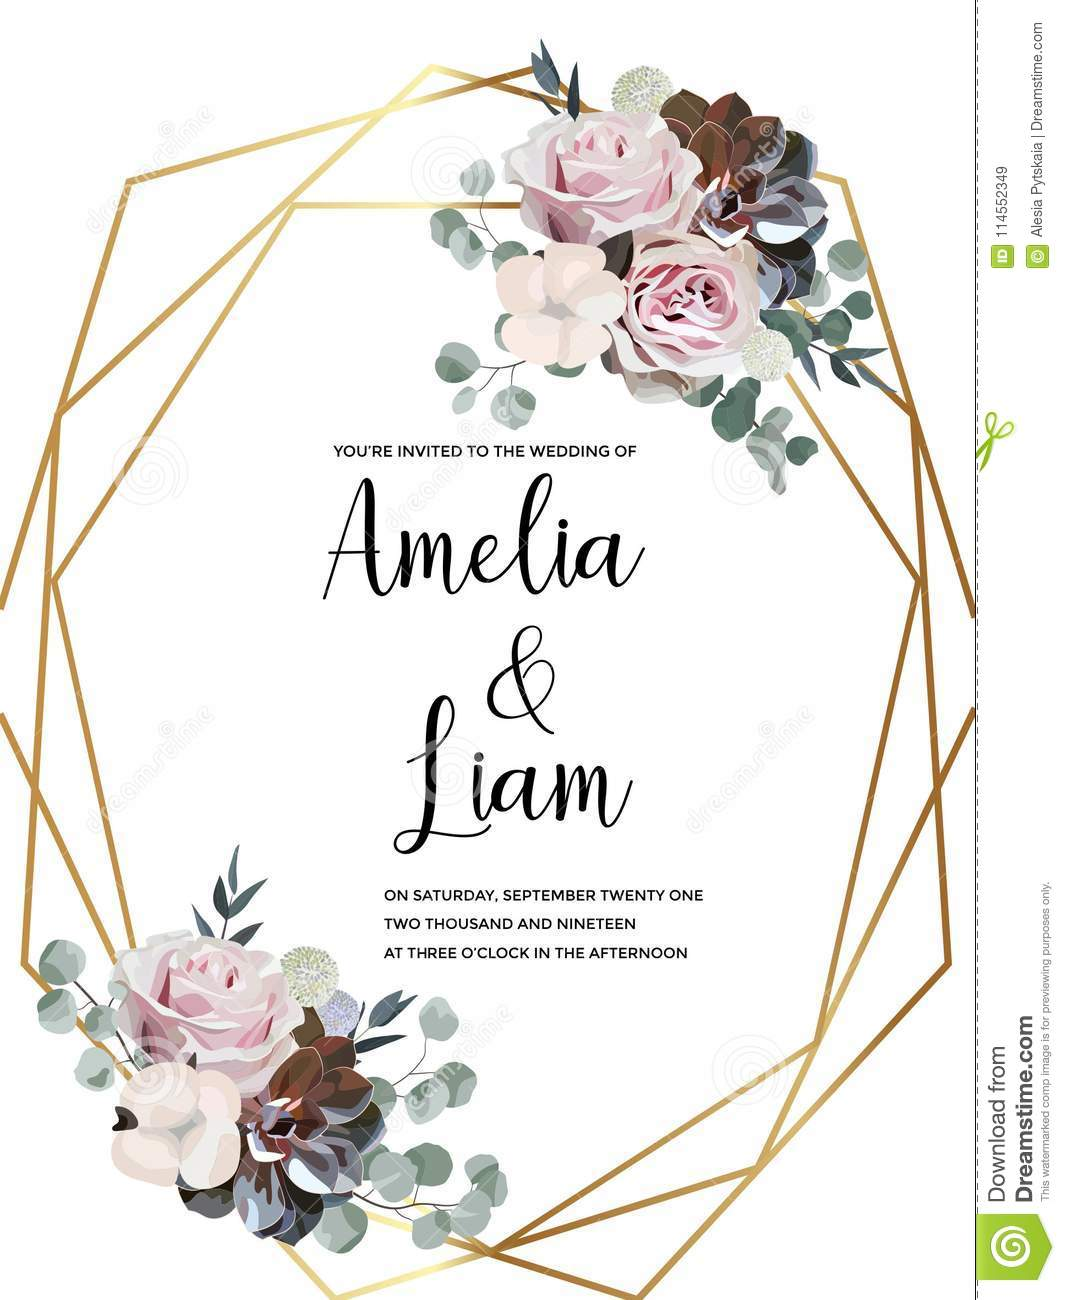 Floral Wedding Invitation Card With Rose,cotton,succulent